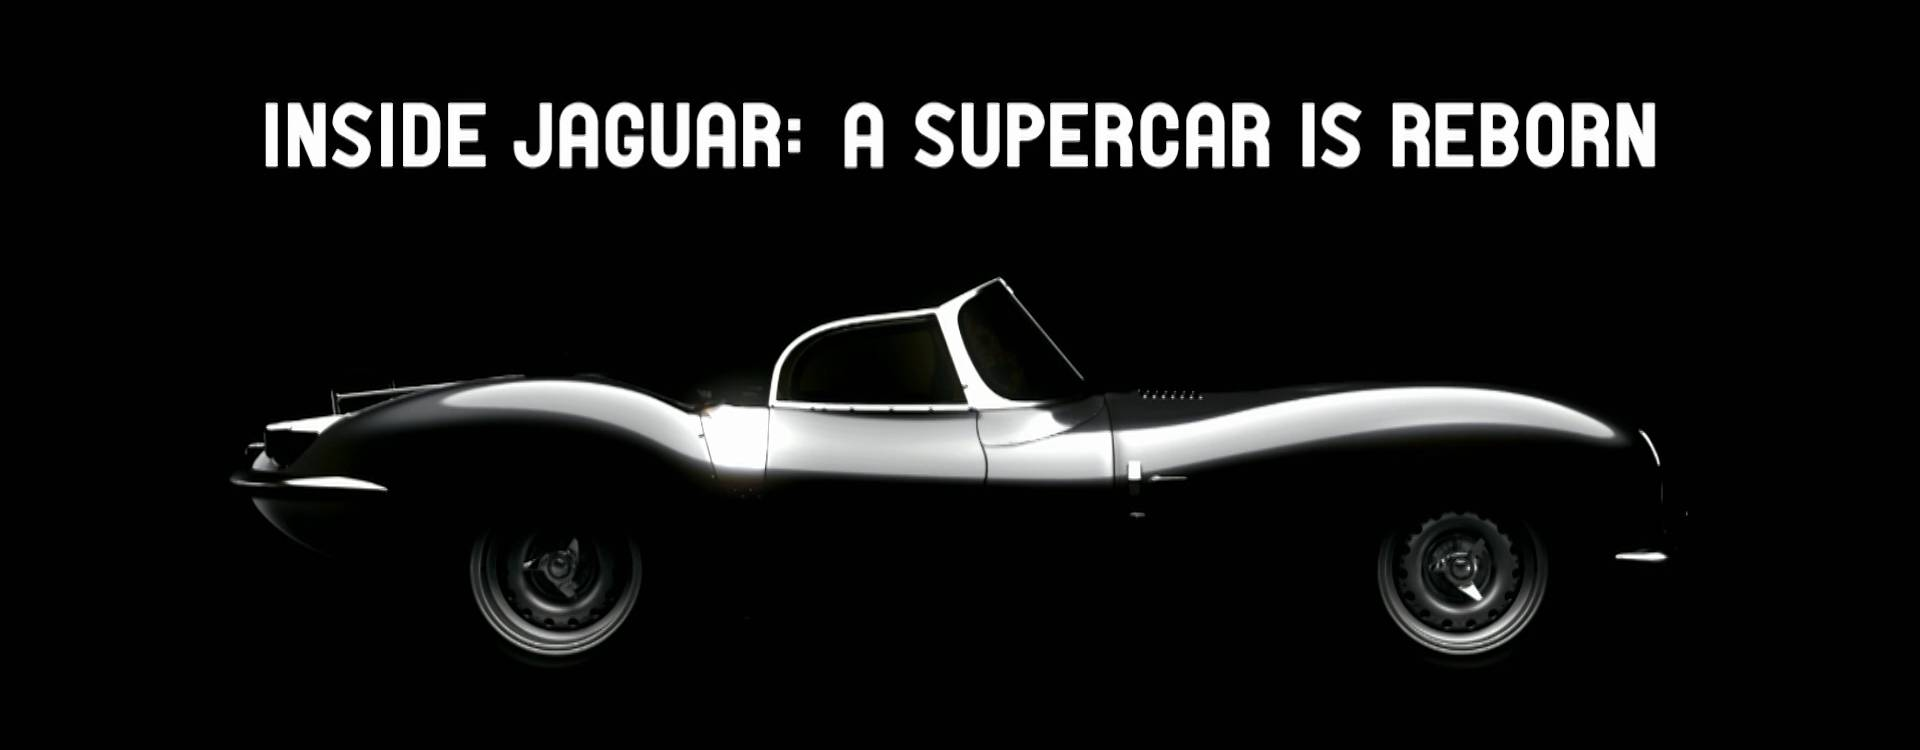 A Supercar Is Reborn-banner